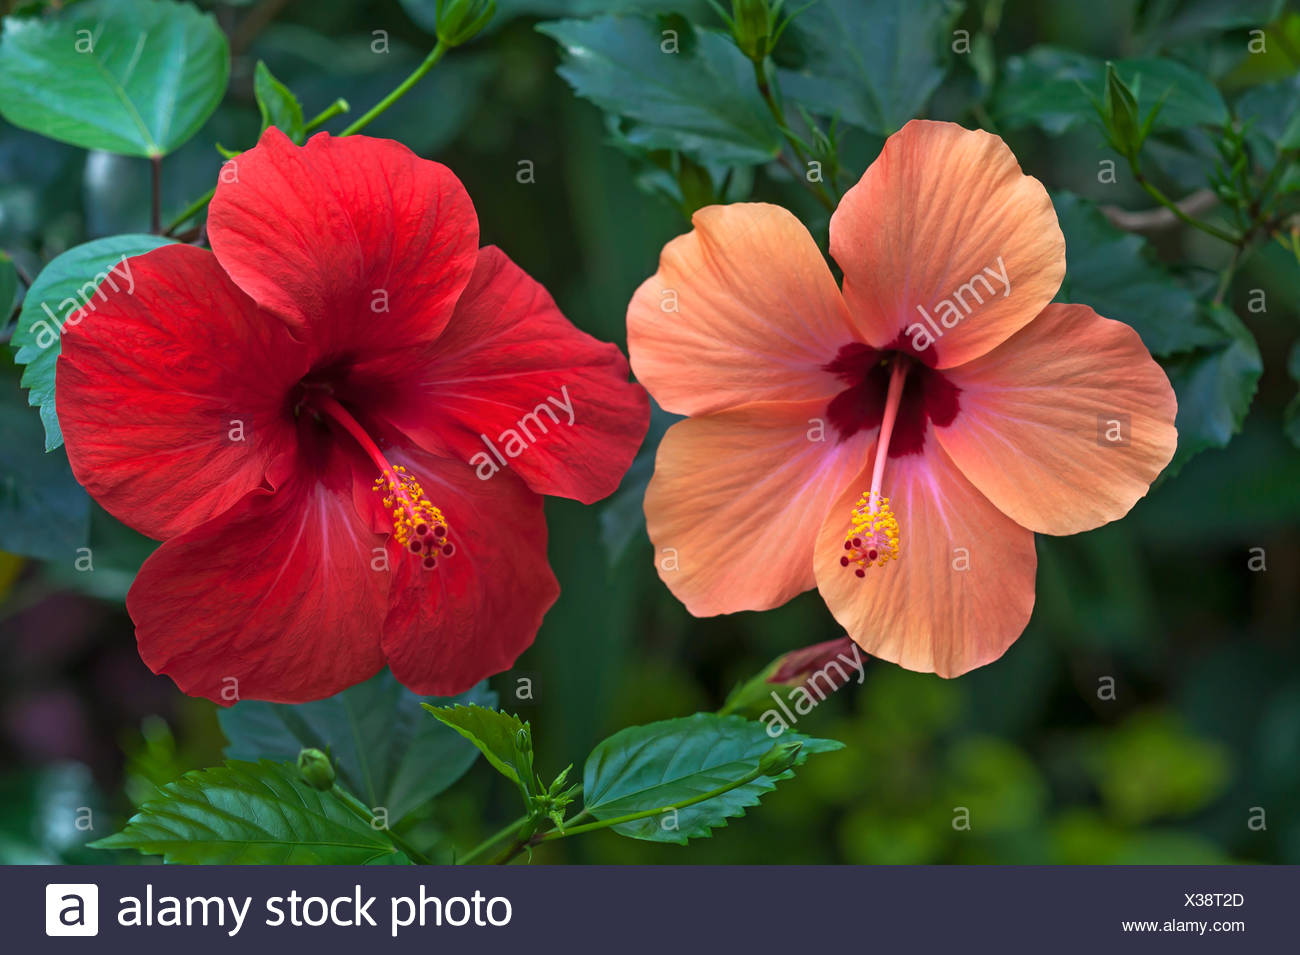 Two hibiscus stock photos two hibiscus stock images page 2 alamy chinese hibiscus hibiscus rosa sinensis red and pink flowers stock image izmirmasajfo